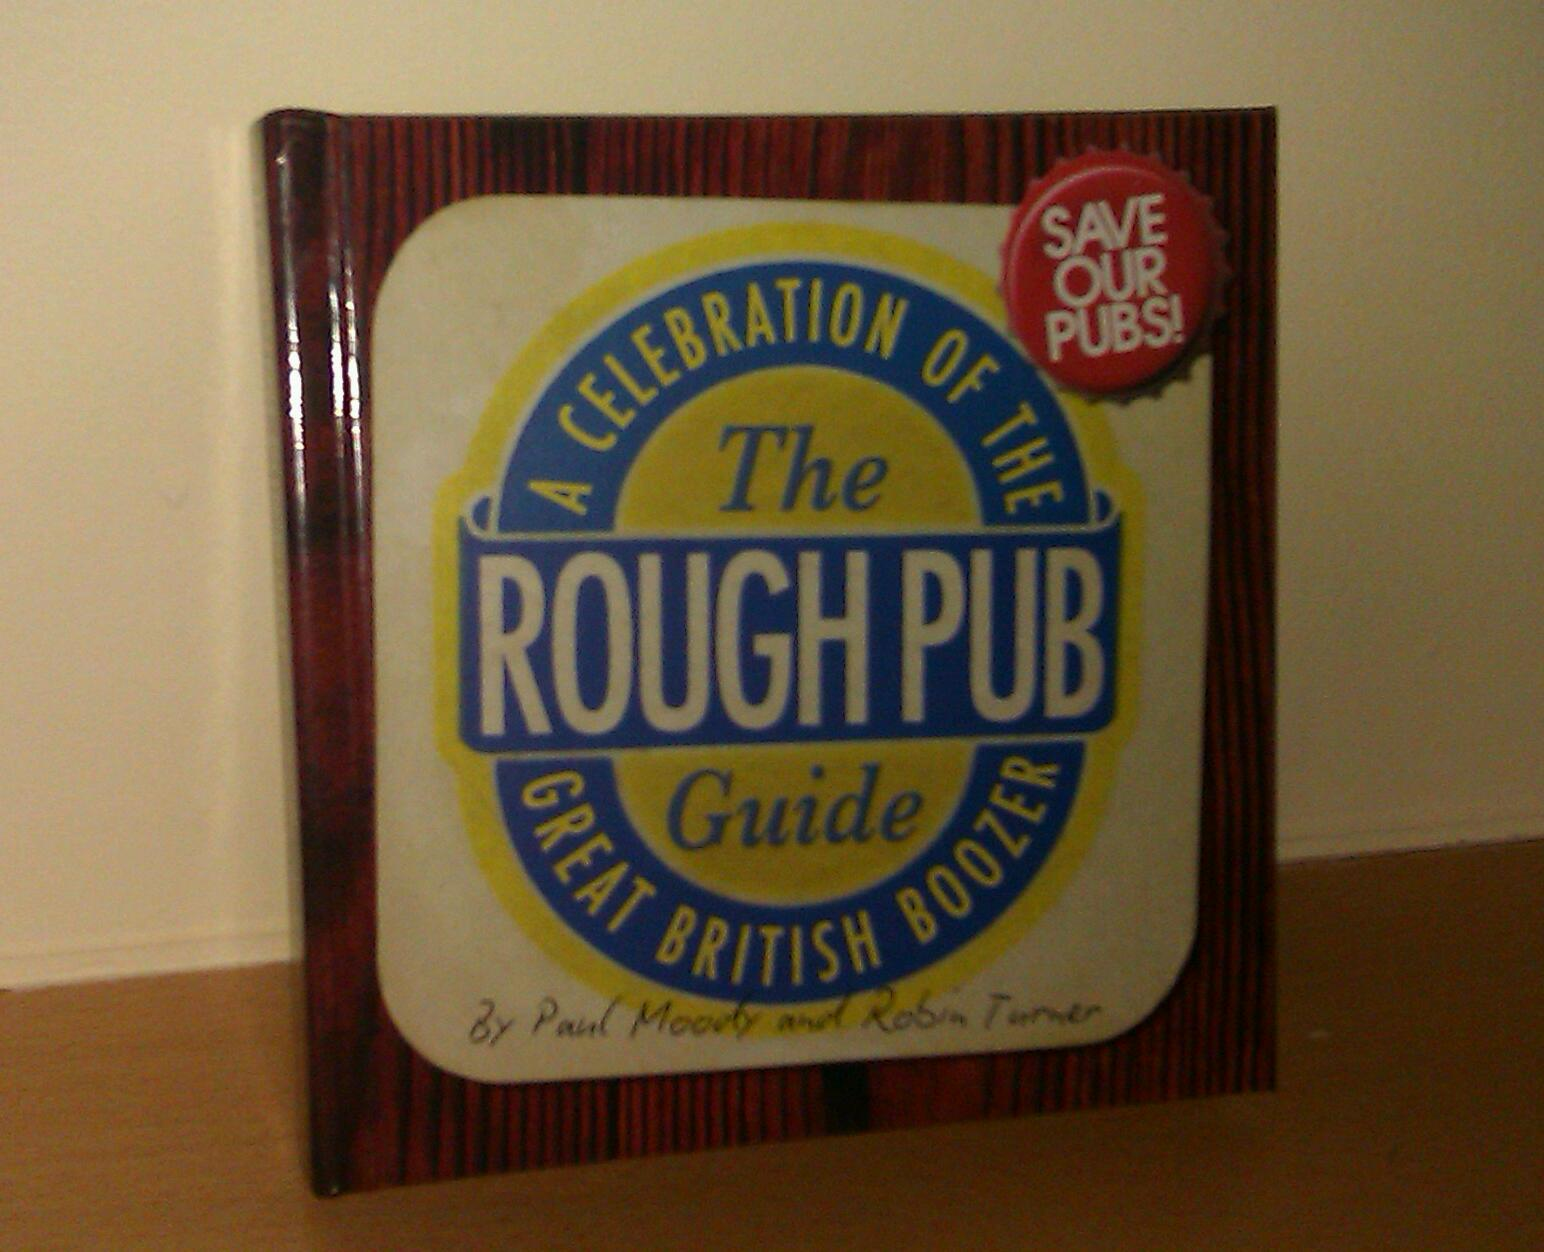 Image result for rough pub guide